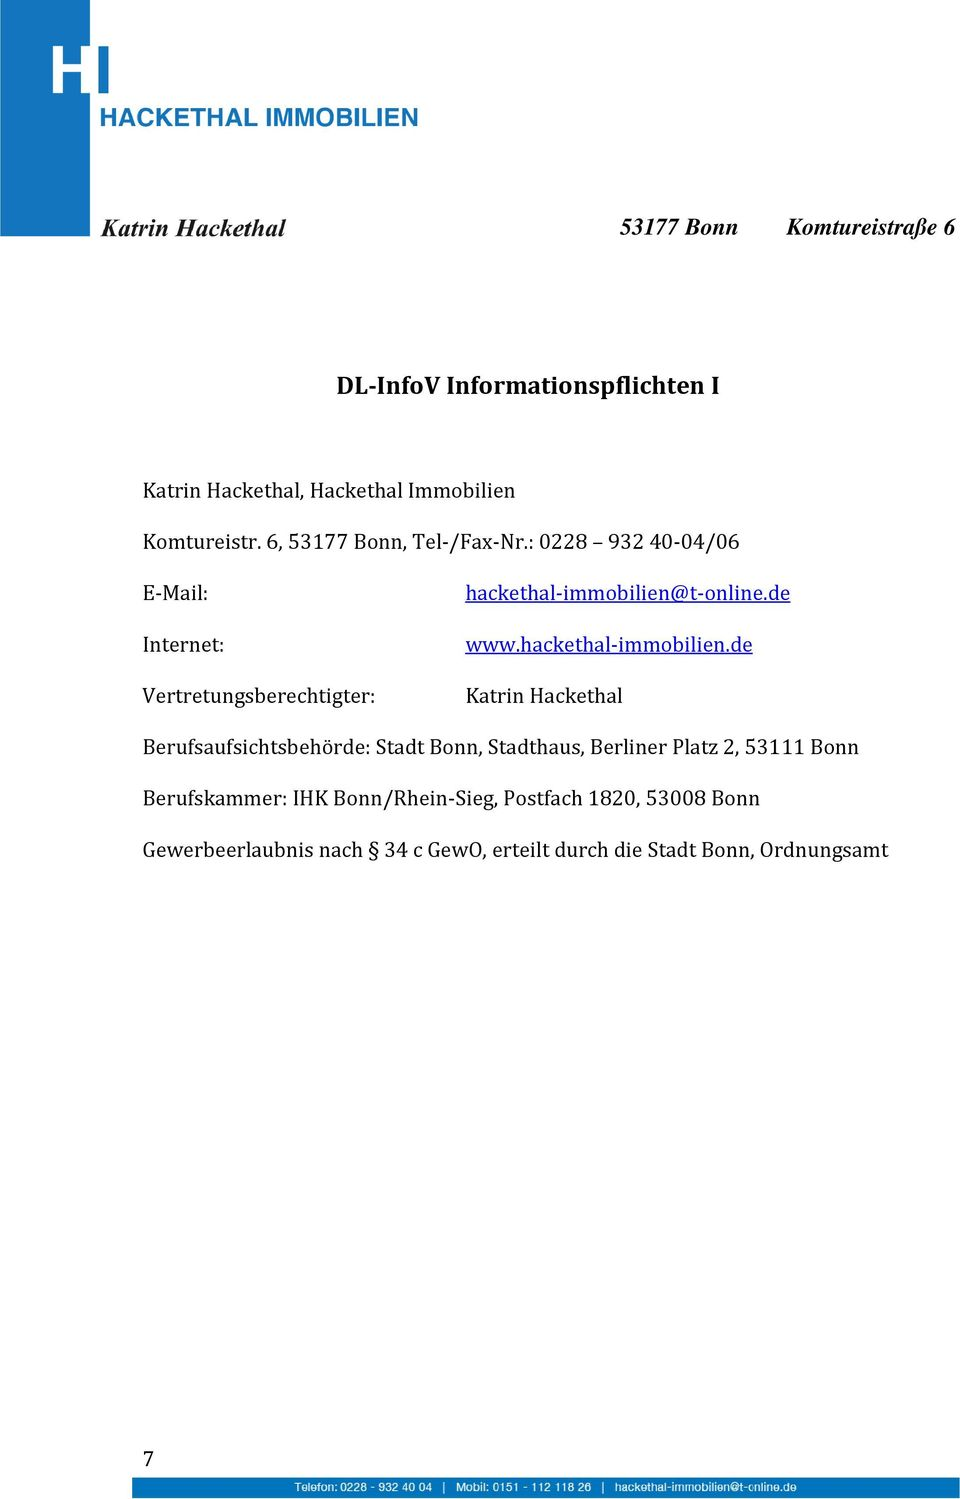 hackethal-immobilien.